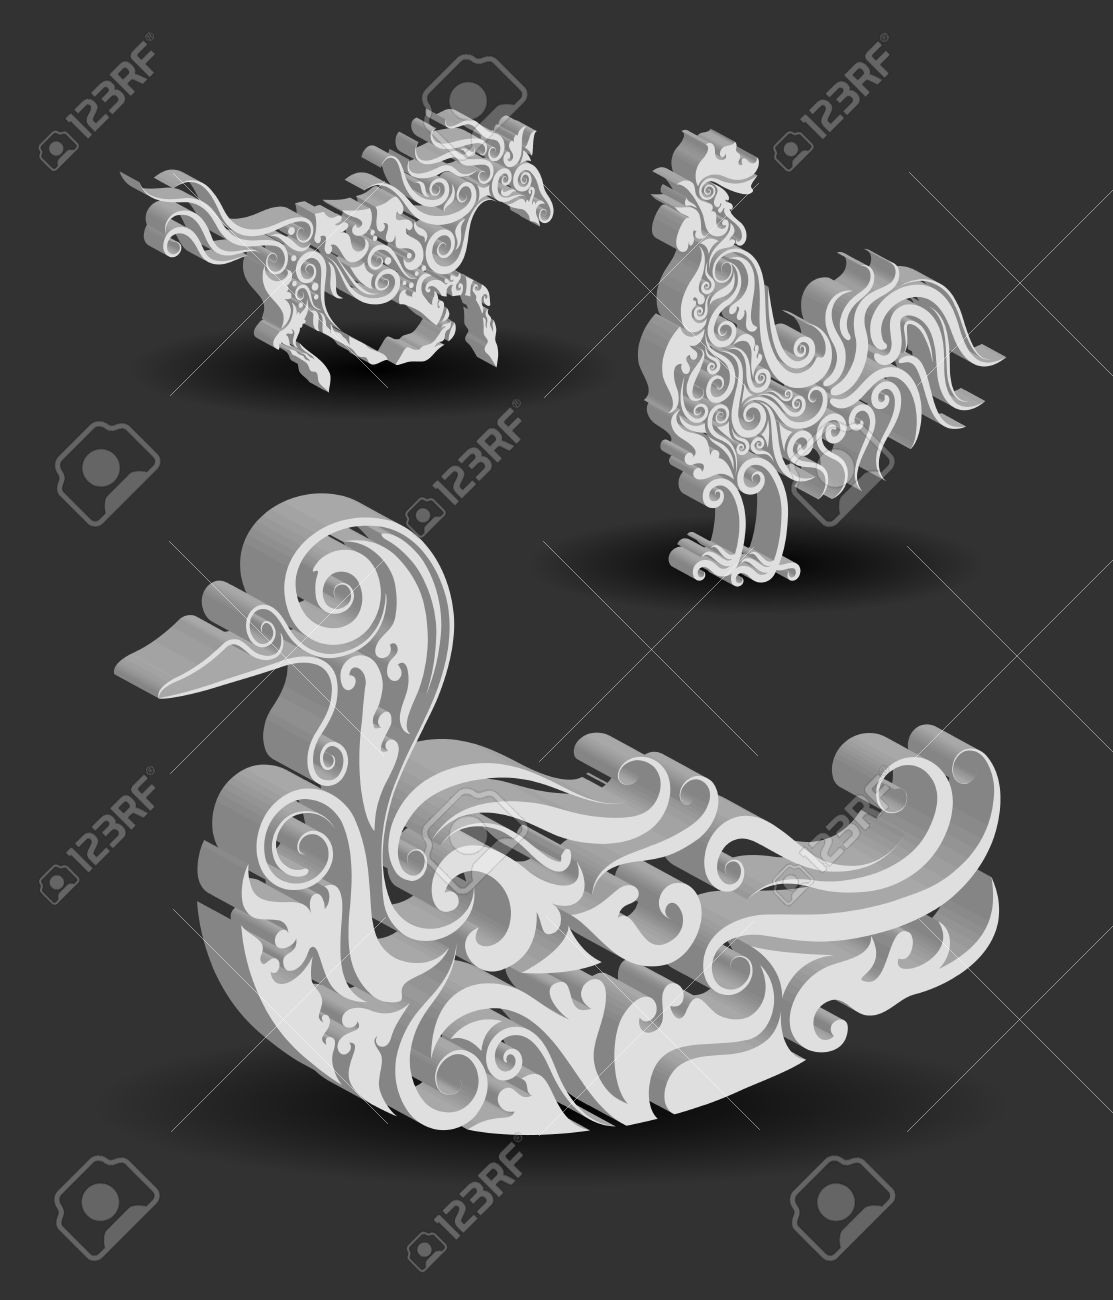 Animal ornaments - Animal Engraving Ornaments 3d Horse Rooster And Duck Stock Vector 20212784